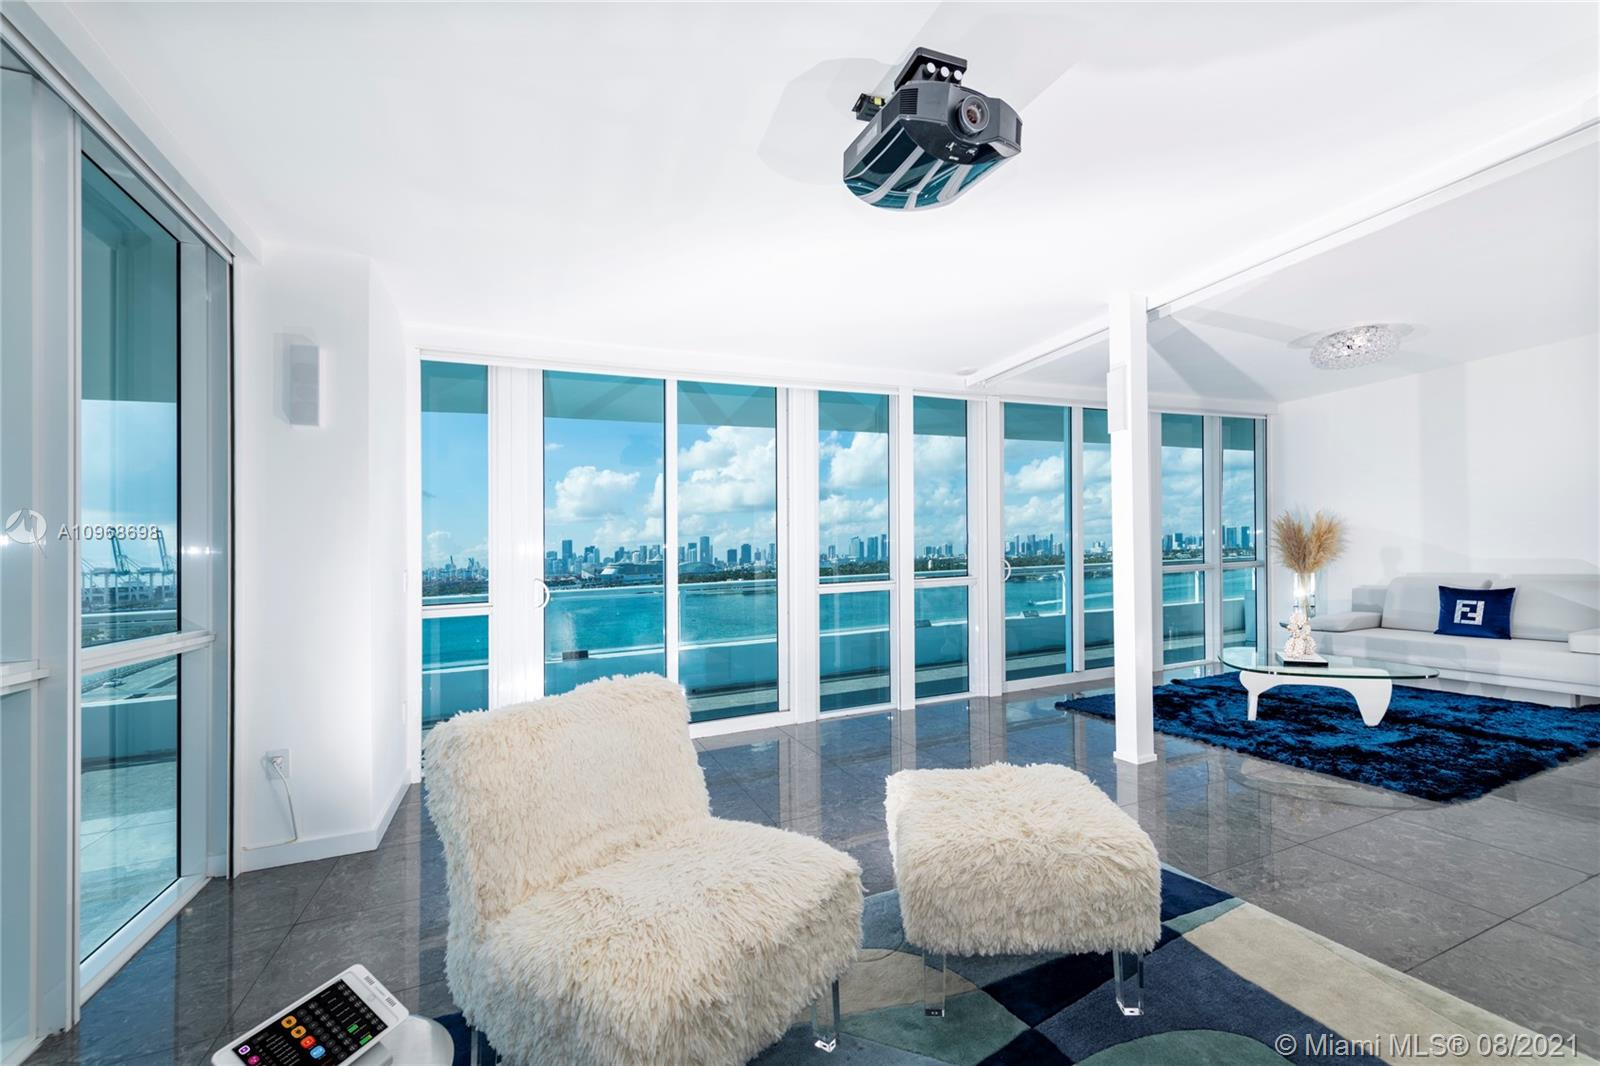 This open floor plan house in the sky located in the heart of south beach  offers panoramic 120° wraparound views of the ocean, Miami skyline at the prestigious Bentley bay residences . This one-of-a-kind  unit boasts floor-to-ceiling windows, 9 'ceilings, state-of-the-art Crestron controlled audio & visual/lighting & shade system & 160' screen /projector . Gourmet chef's kitchen is complete with top-of-the-line Gaggenau  & Sub-Zero appliances.Huge wrap around Corner balconies over 1200 sqft Direct water views/no obstruction Marina downstairs/concierge . Your home and your boat in the same spot..